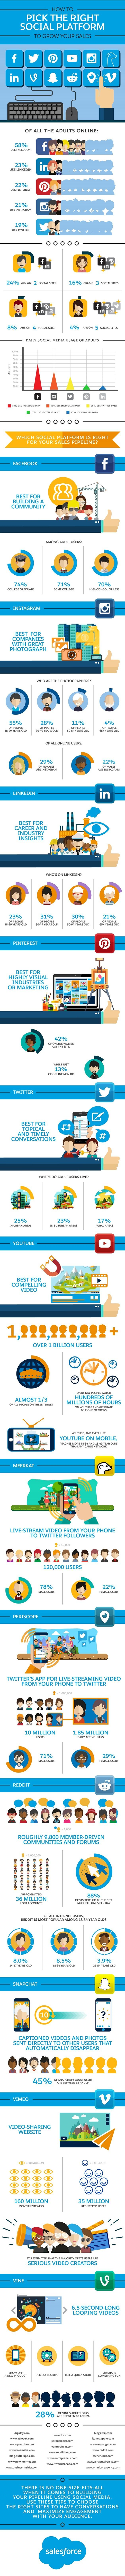 Social Media - How to Pick the Right Social Platform to Grow Your Sales [Infographic] : MarketingProfs Article